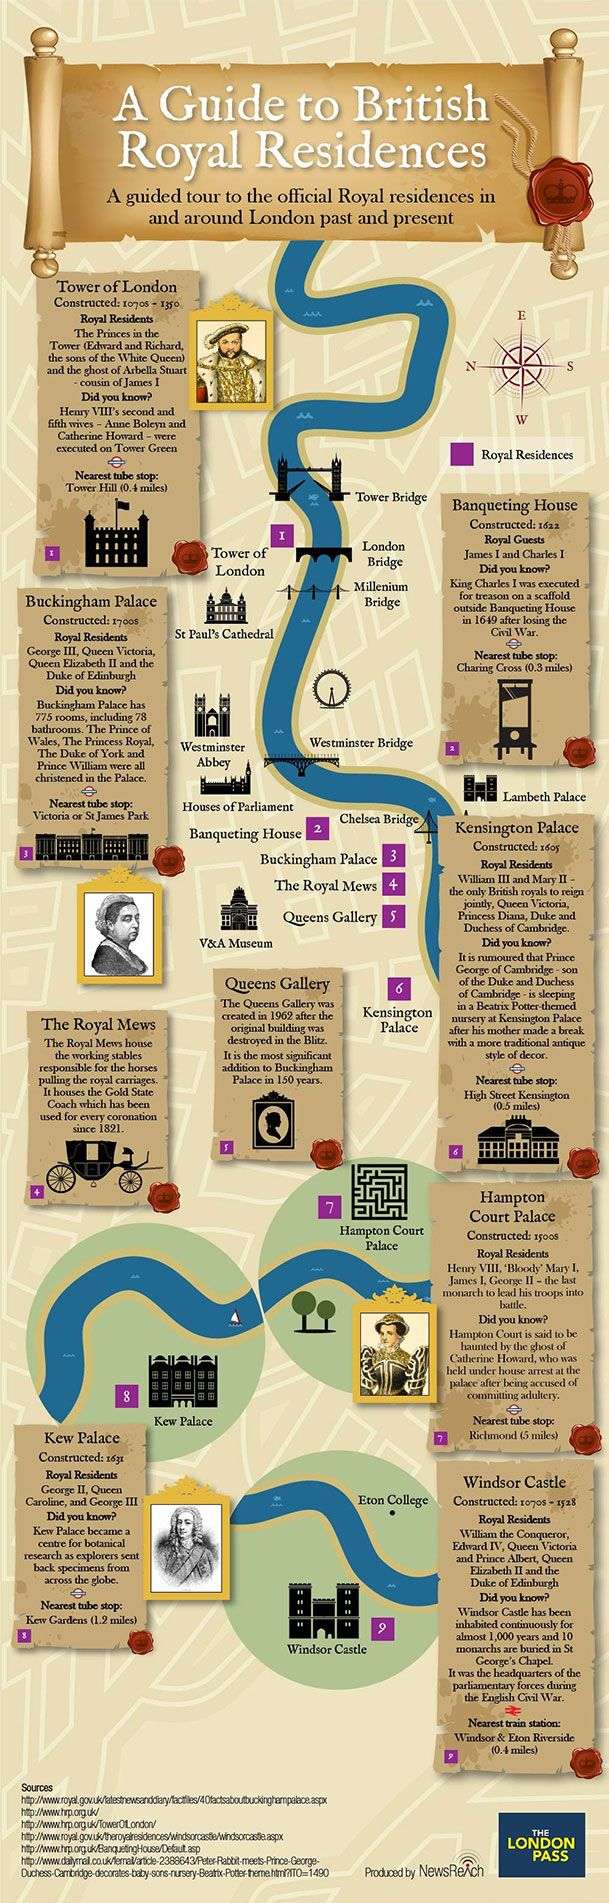 Here's a visual guide to the royal residences you can visit on a trip to London, complete with trivia, which we produced for London Pass.